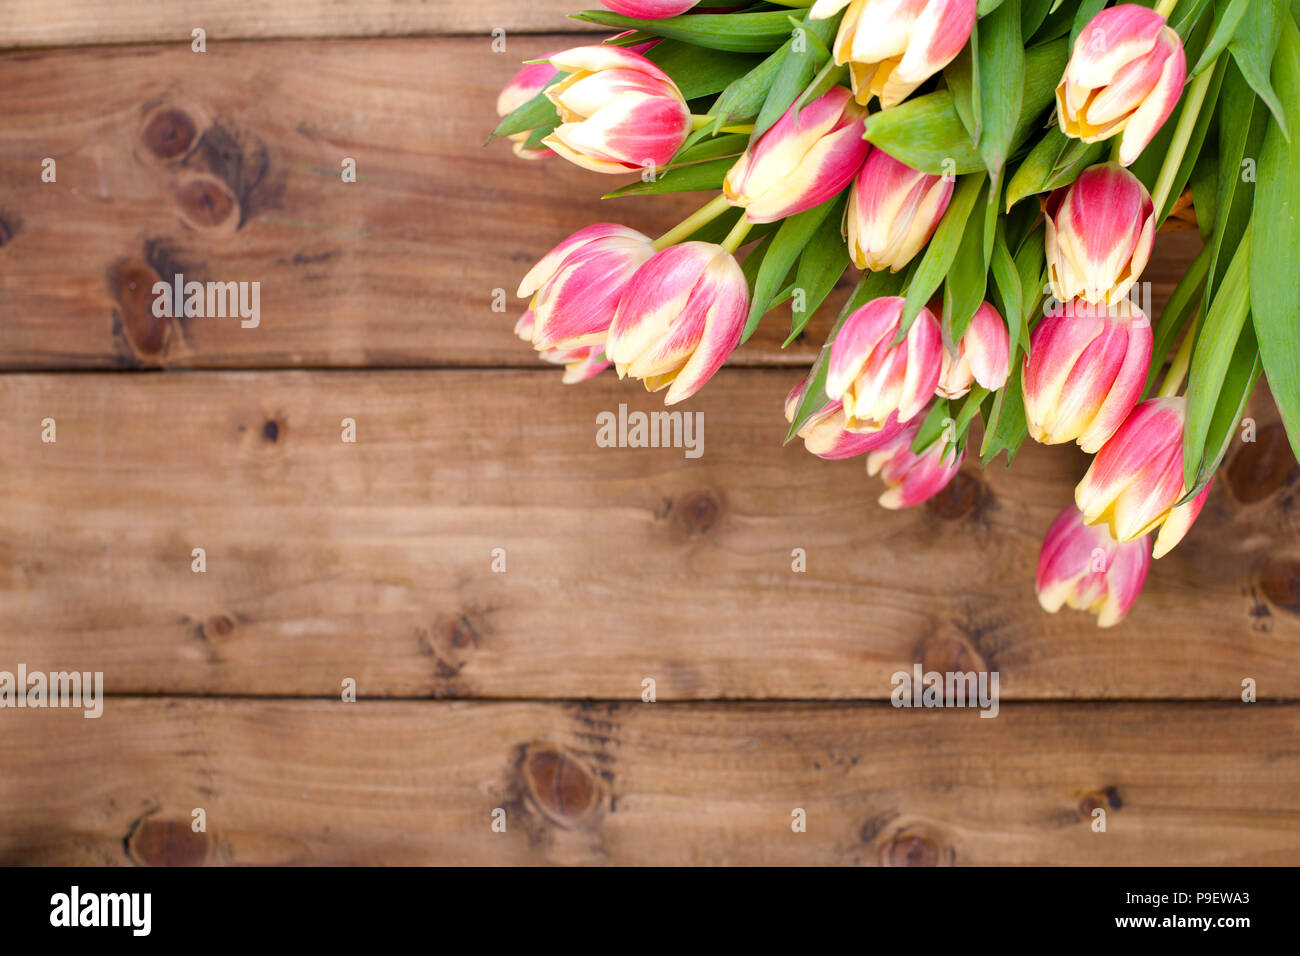 Beautiful bouquet of fresh spring flowers. Tulips. Wooden brown background. Free space for text or a postcard - Stock Image